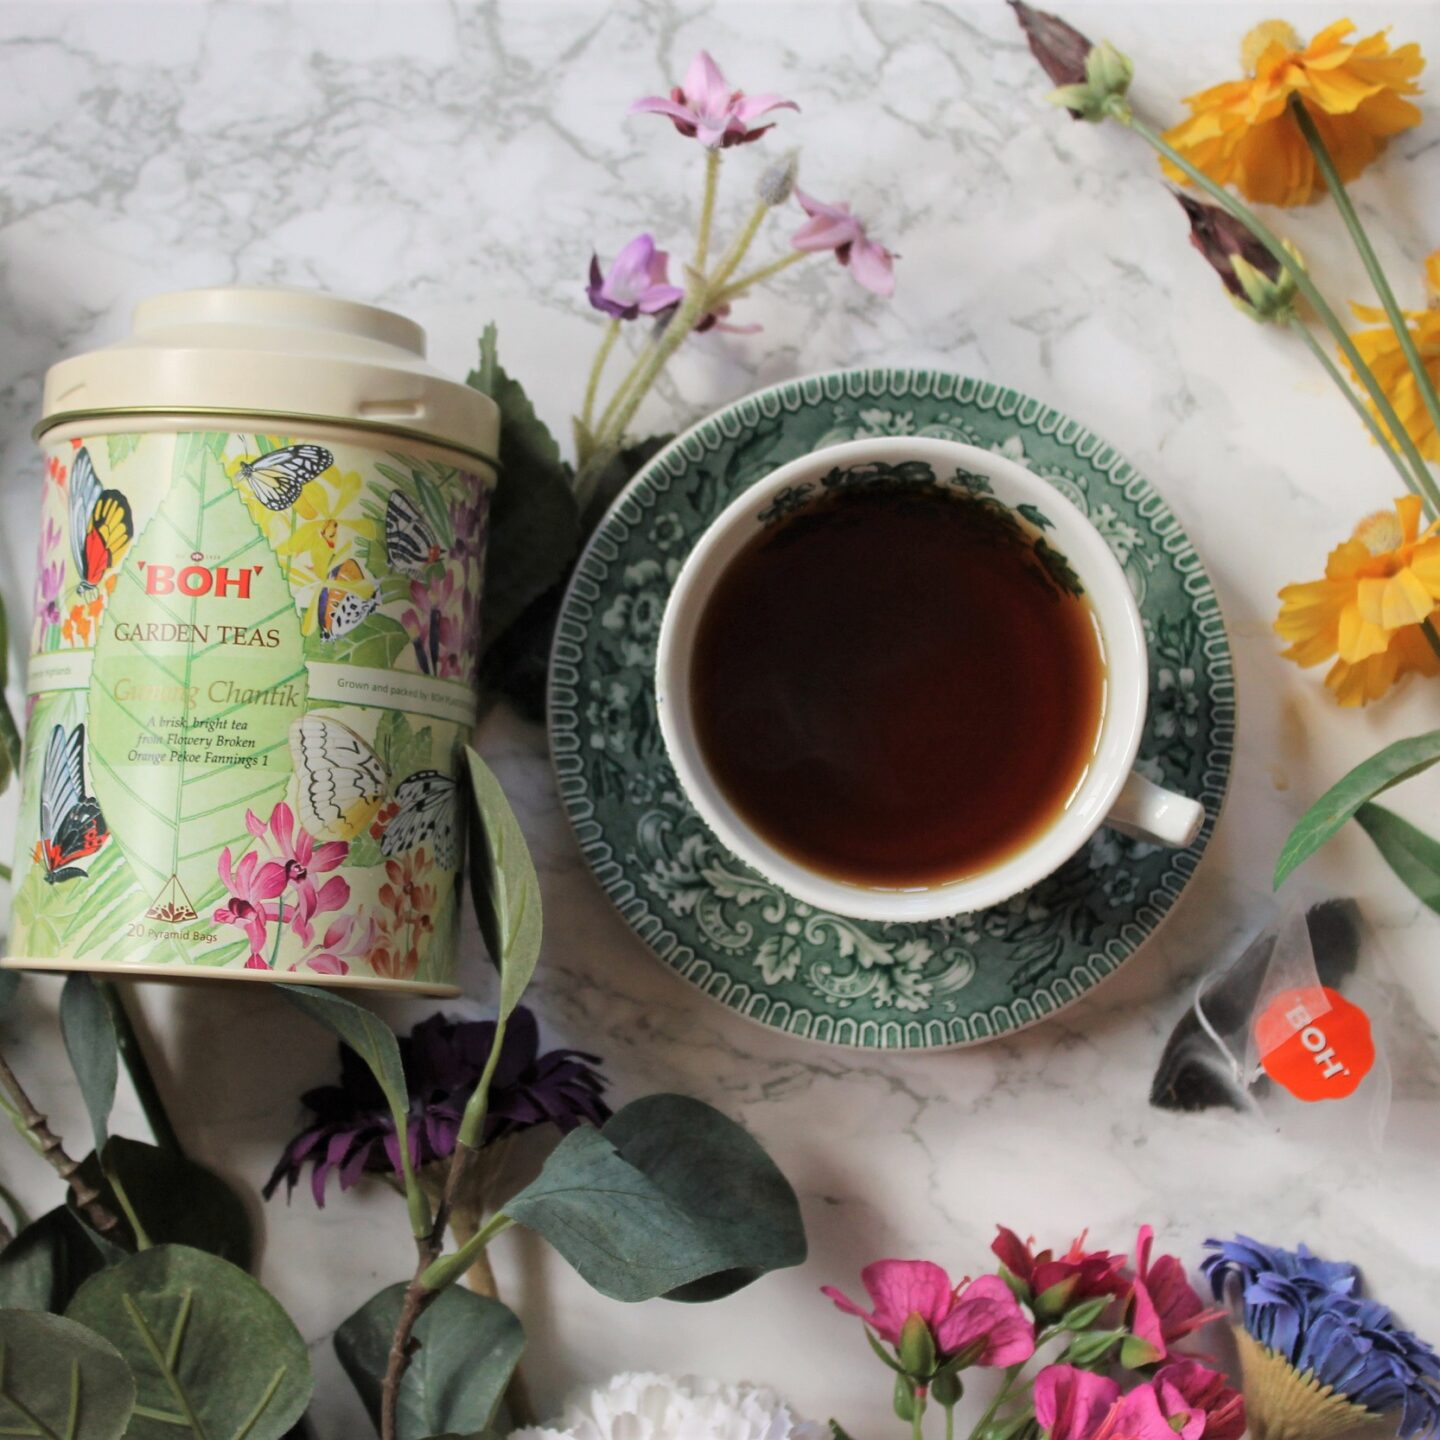 BOH Garden Teas – Gunung Chantik Tea Review